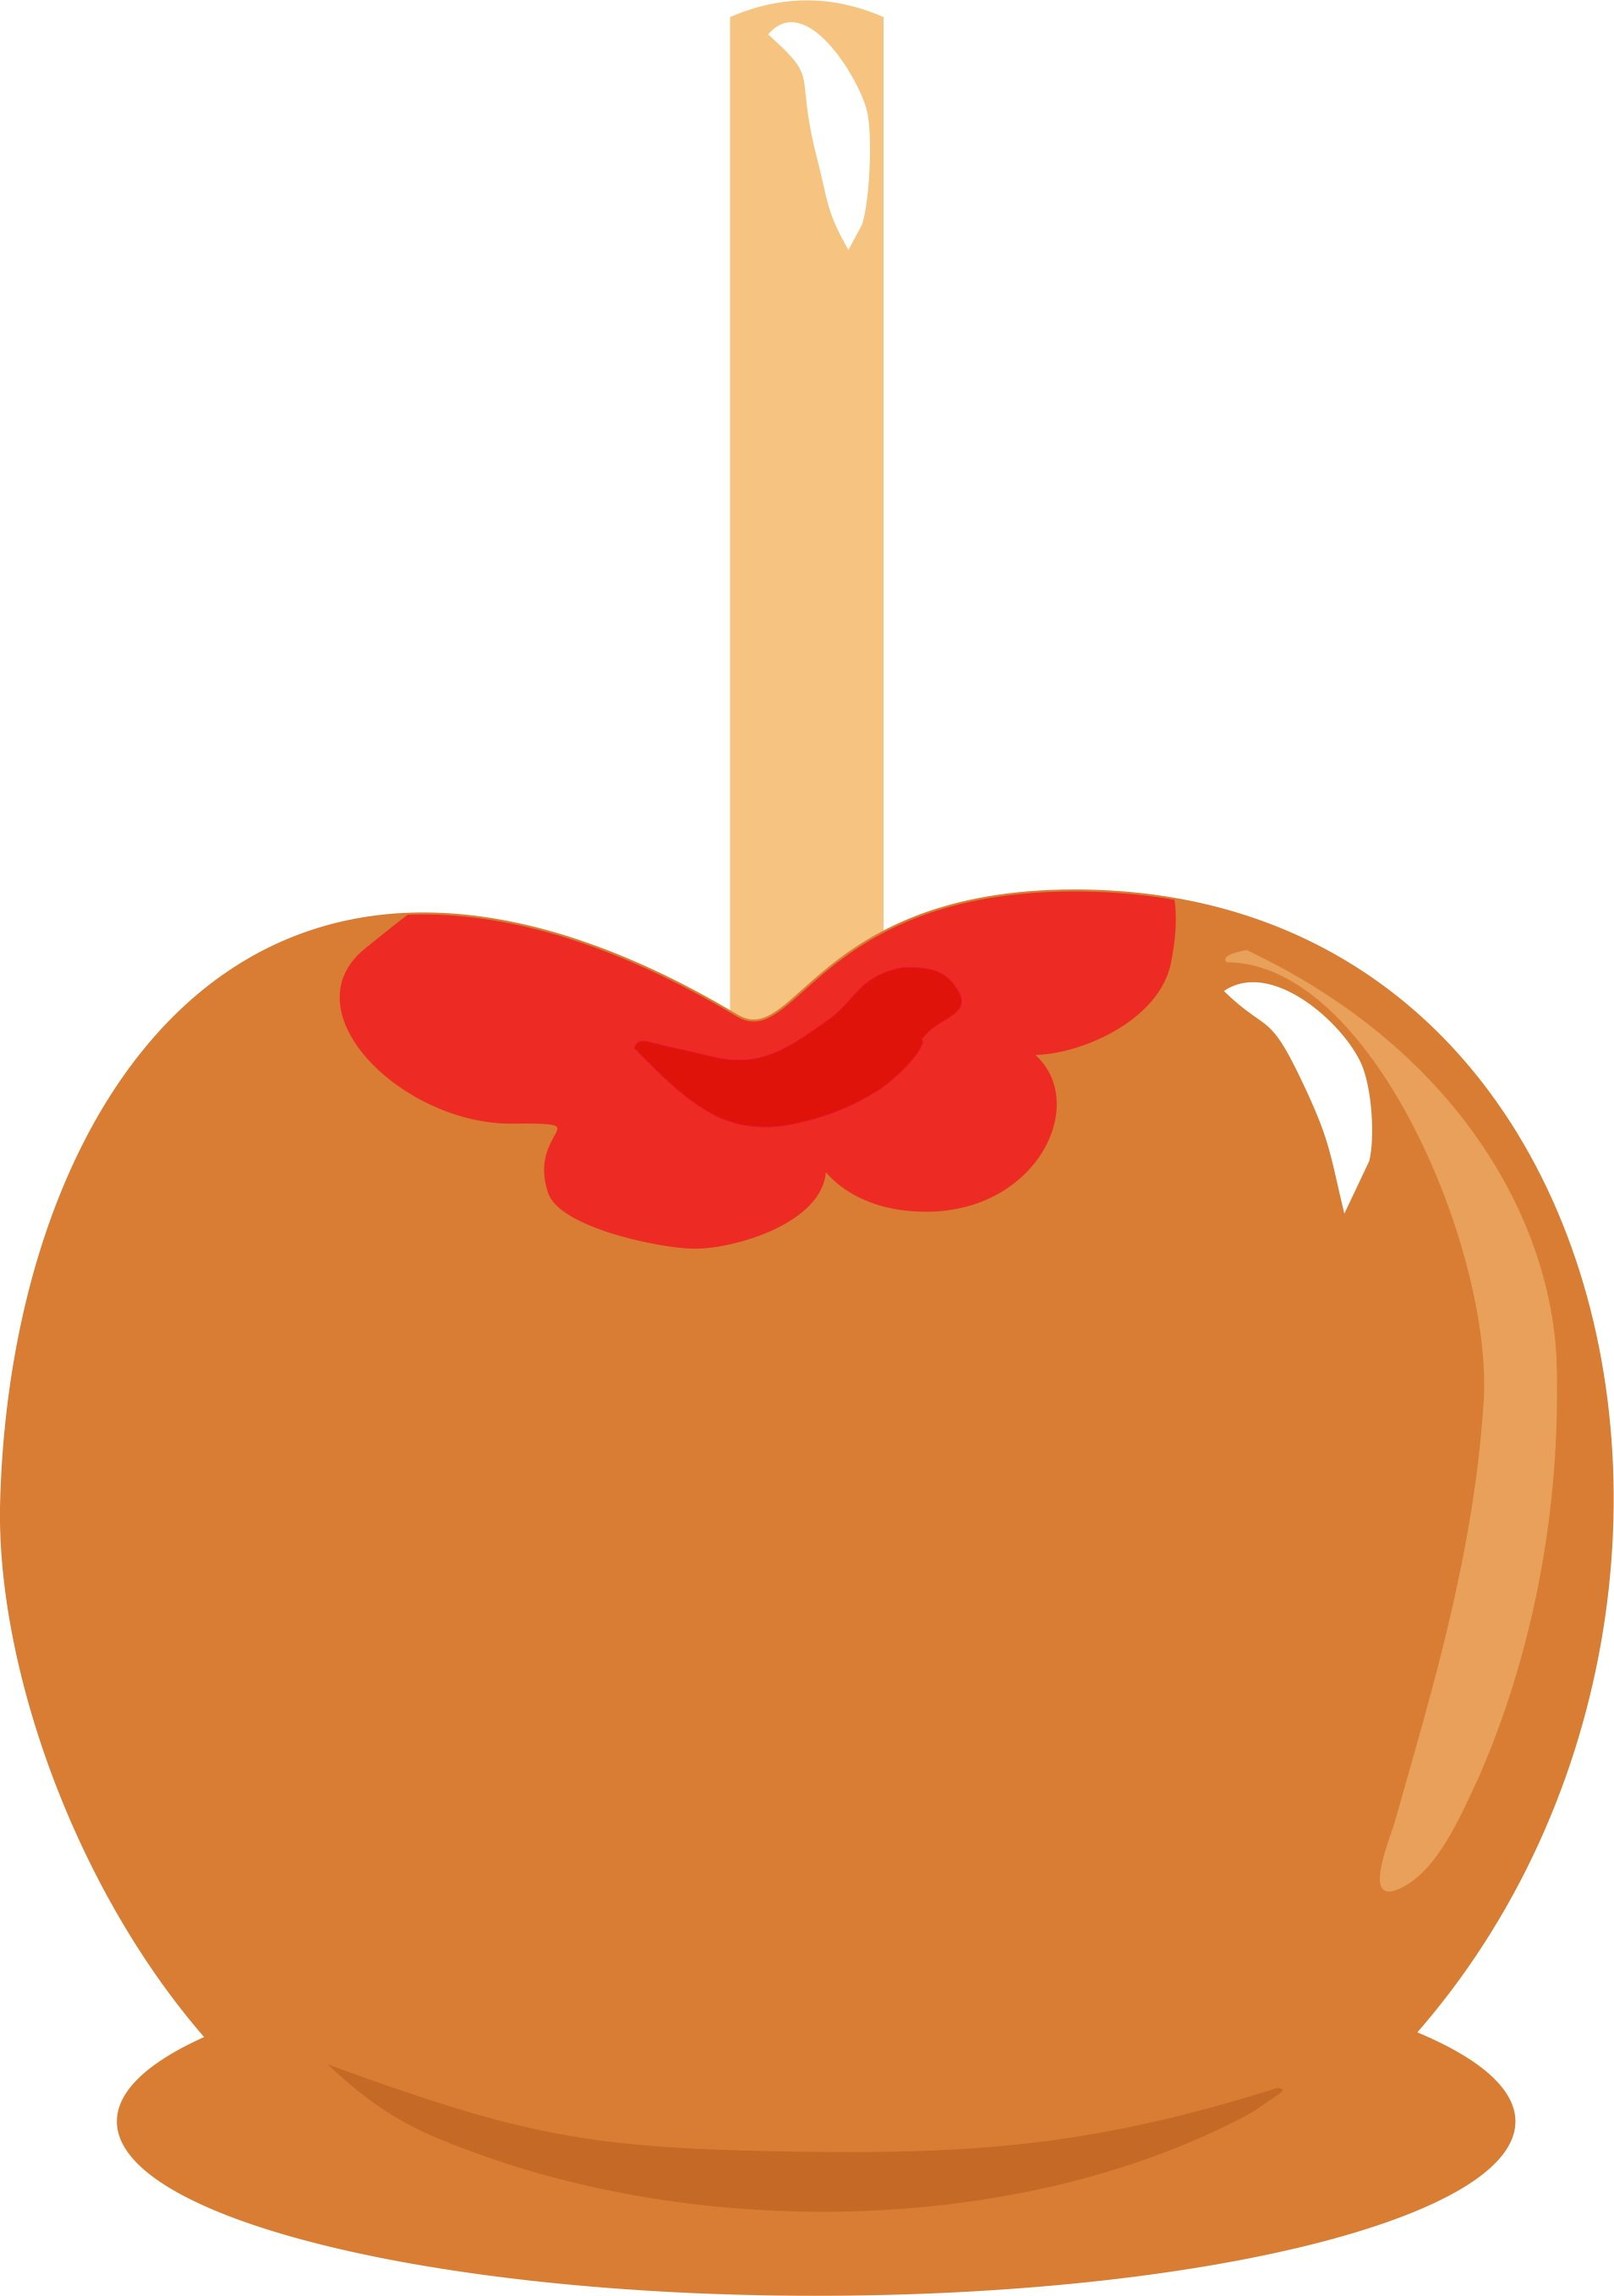 1909x2716 Children's Museum Of Phoenix Caramel Apples